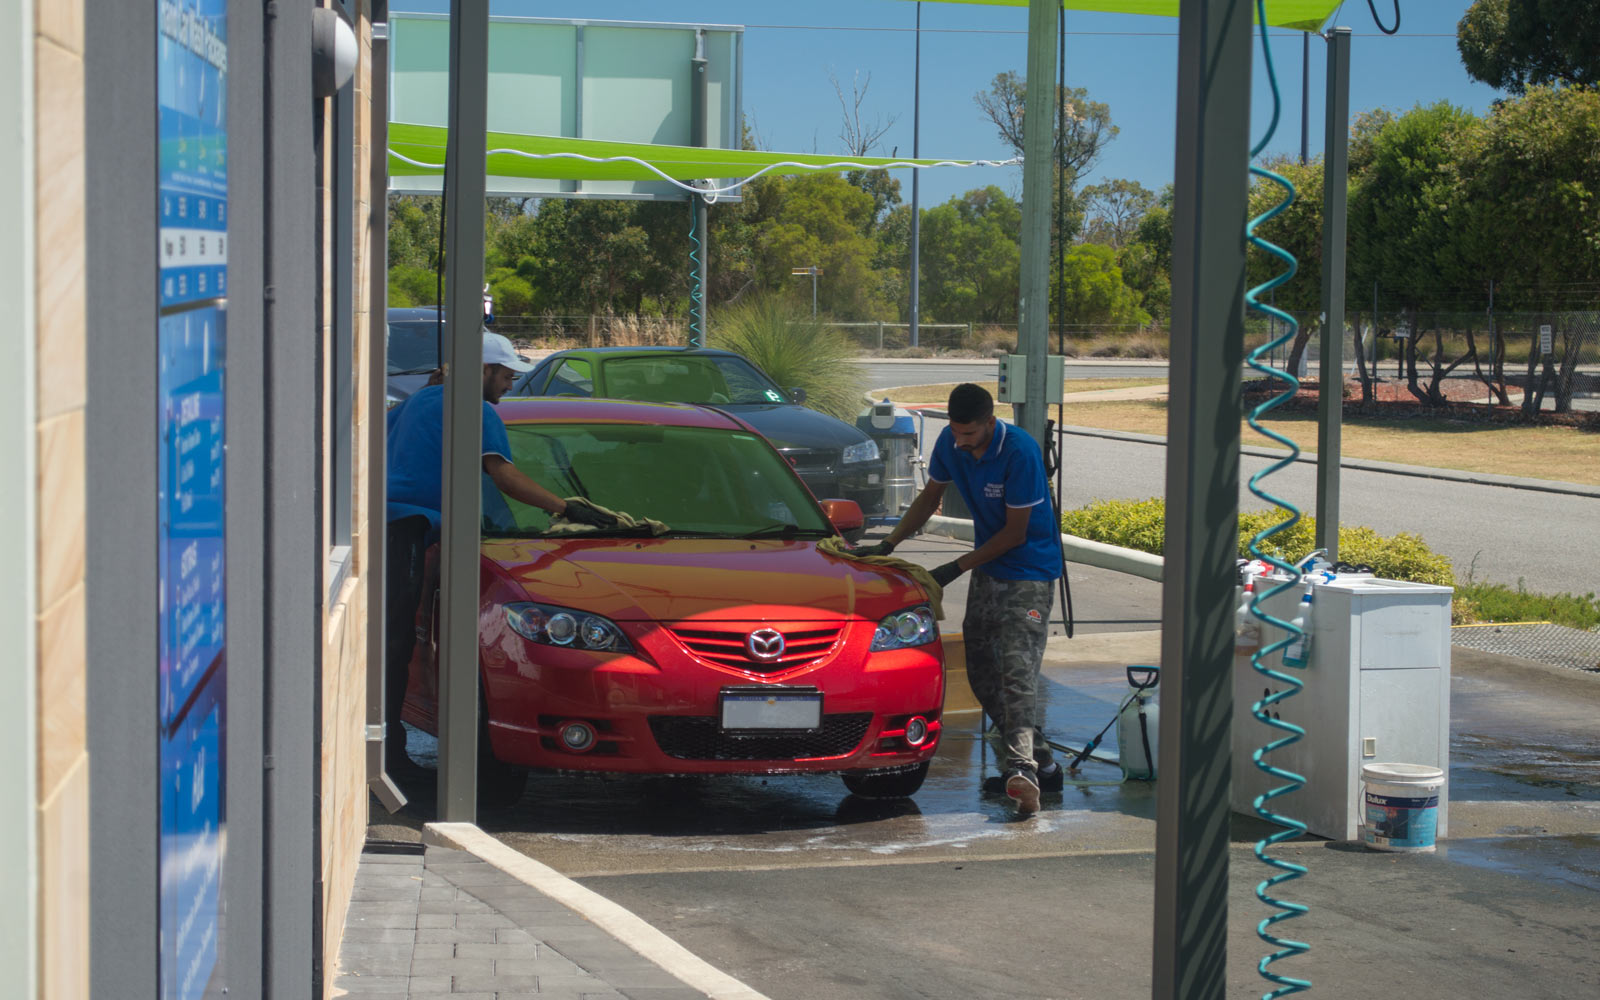 Impeccable Hand Car Wash & Detailing Rockingham